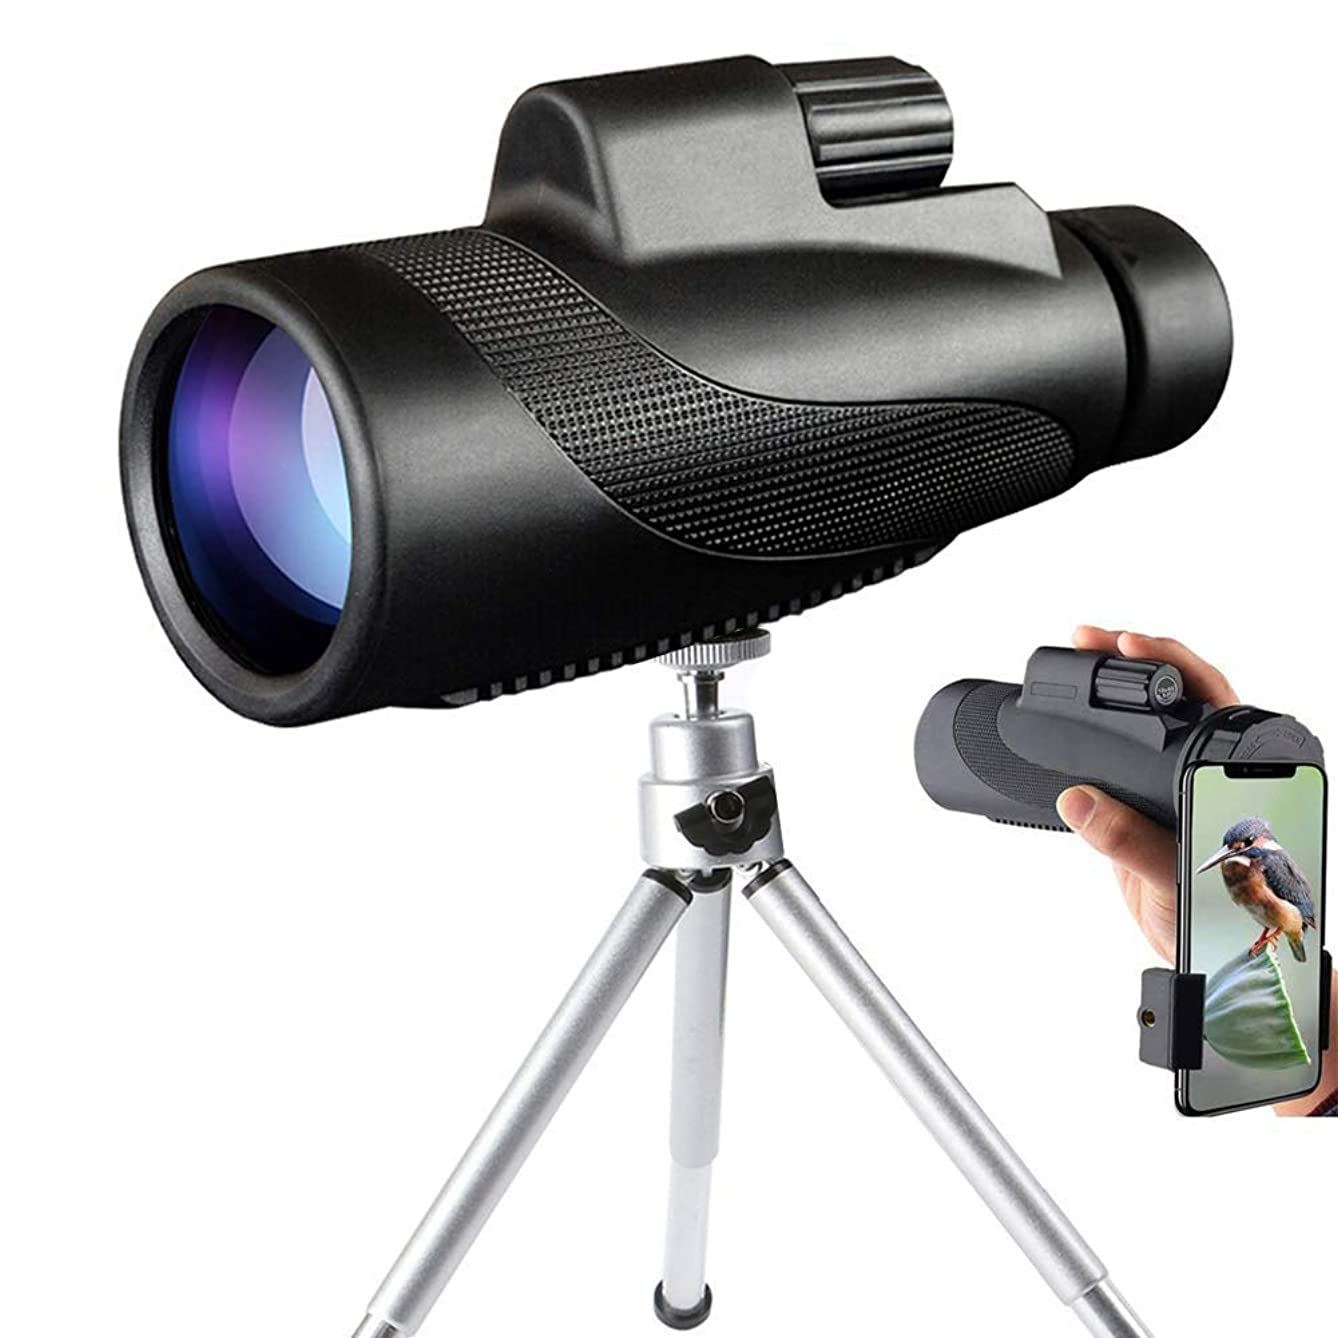 Monocular Telescope, 40X60 High Powered HD BAK4 Prism Waterproof Fog Monocular with Smartphone Adapter & Metal Tripod for Adults Bird Watching, Travel, Camping, Hunting, Concerts